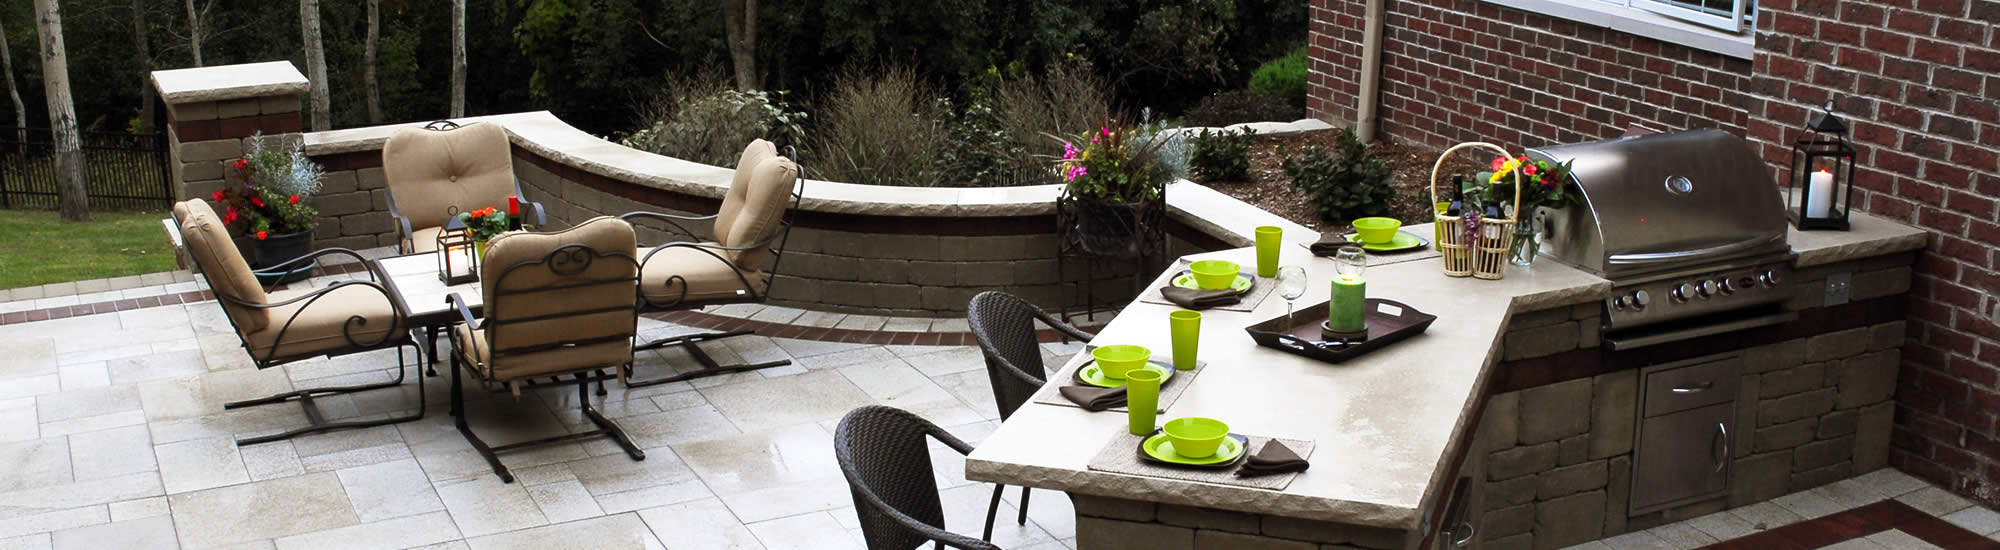 Outdoor Kitchens / BBQ Areas